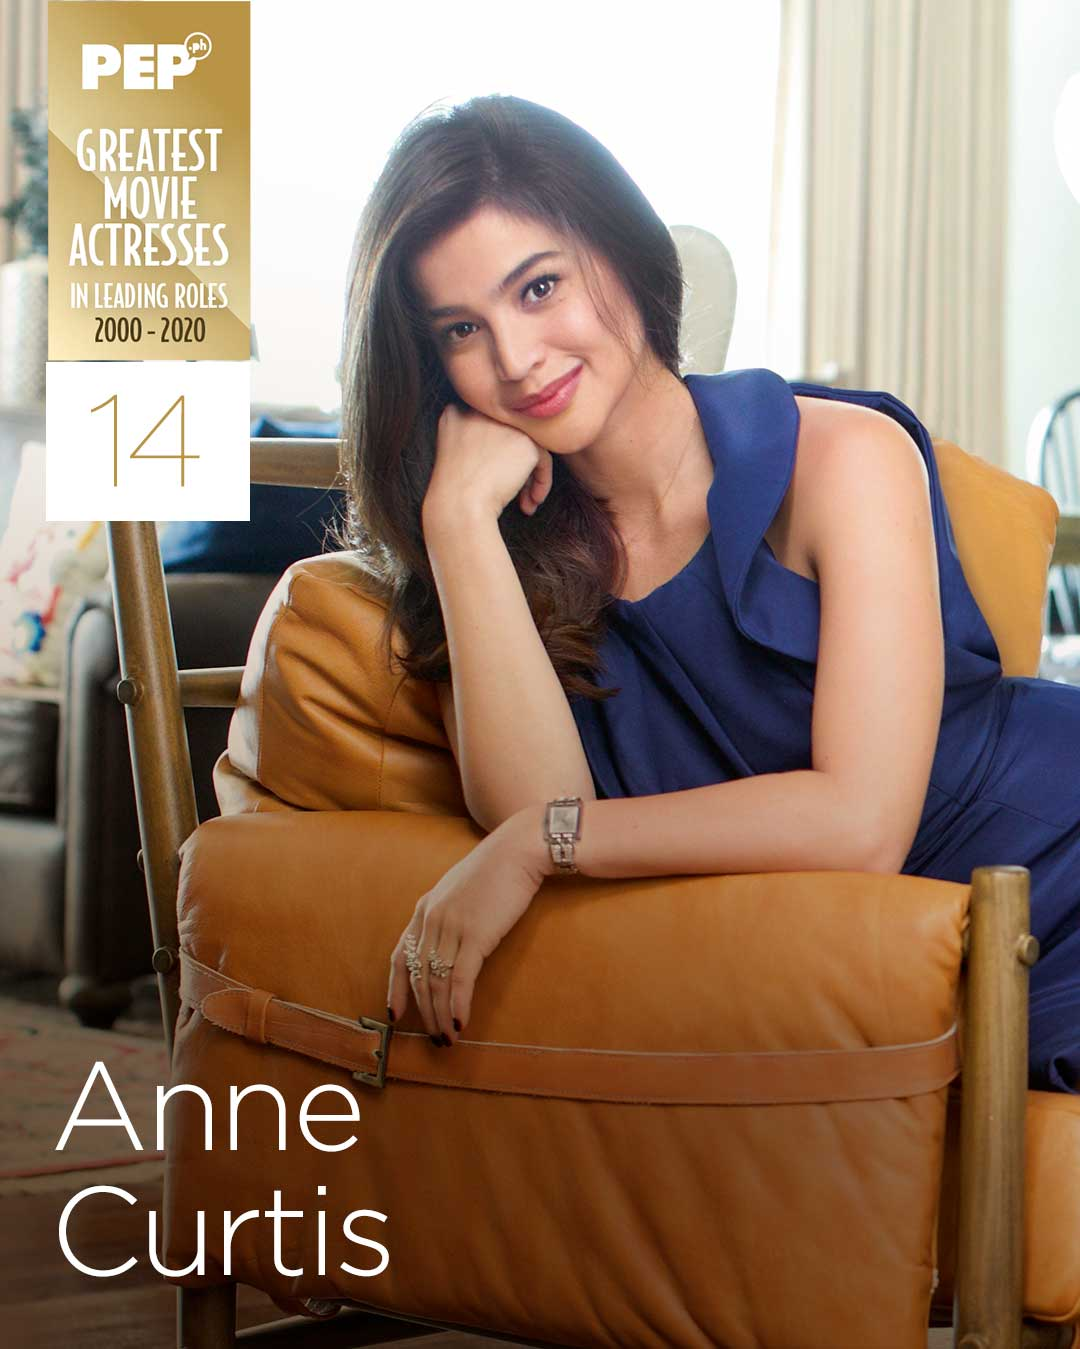 Anne Curtis, 15 Greates Movie Actresses